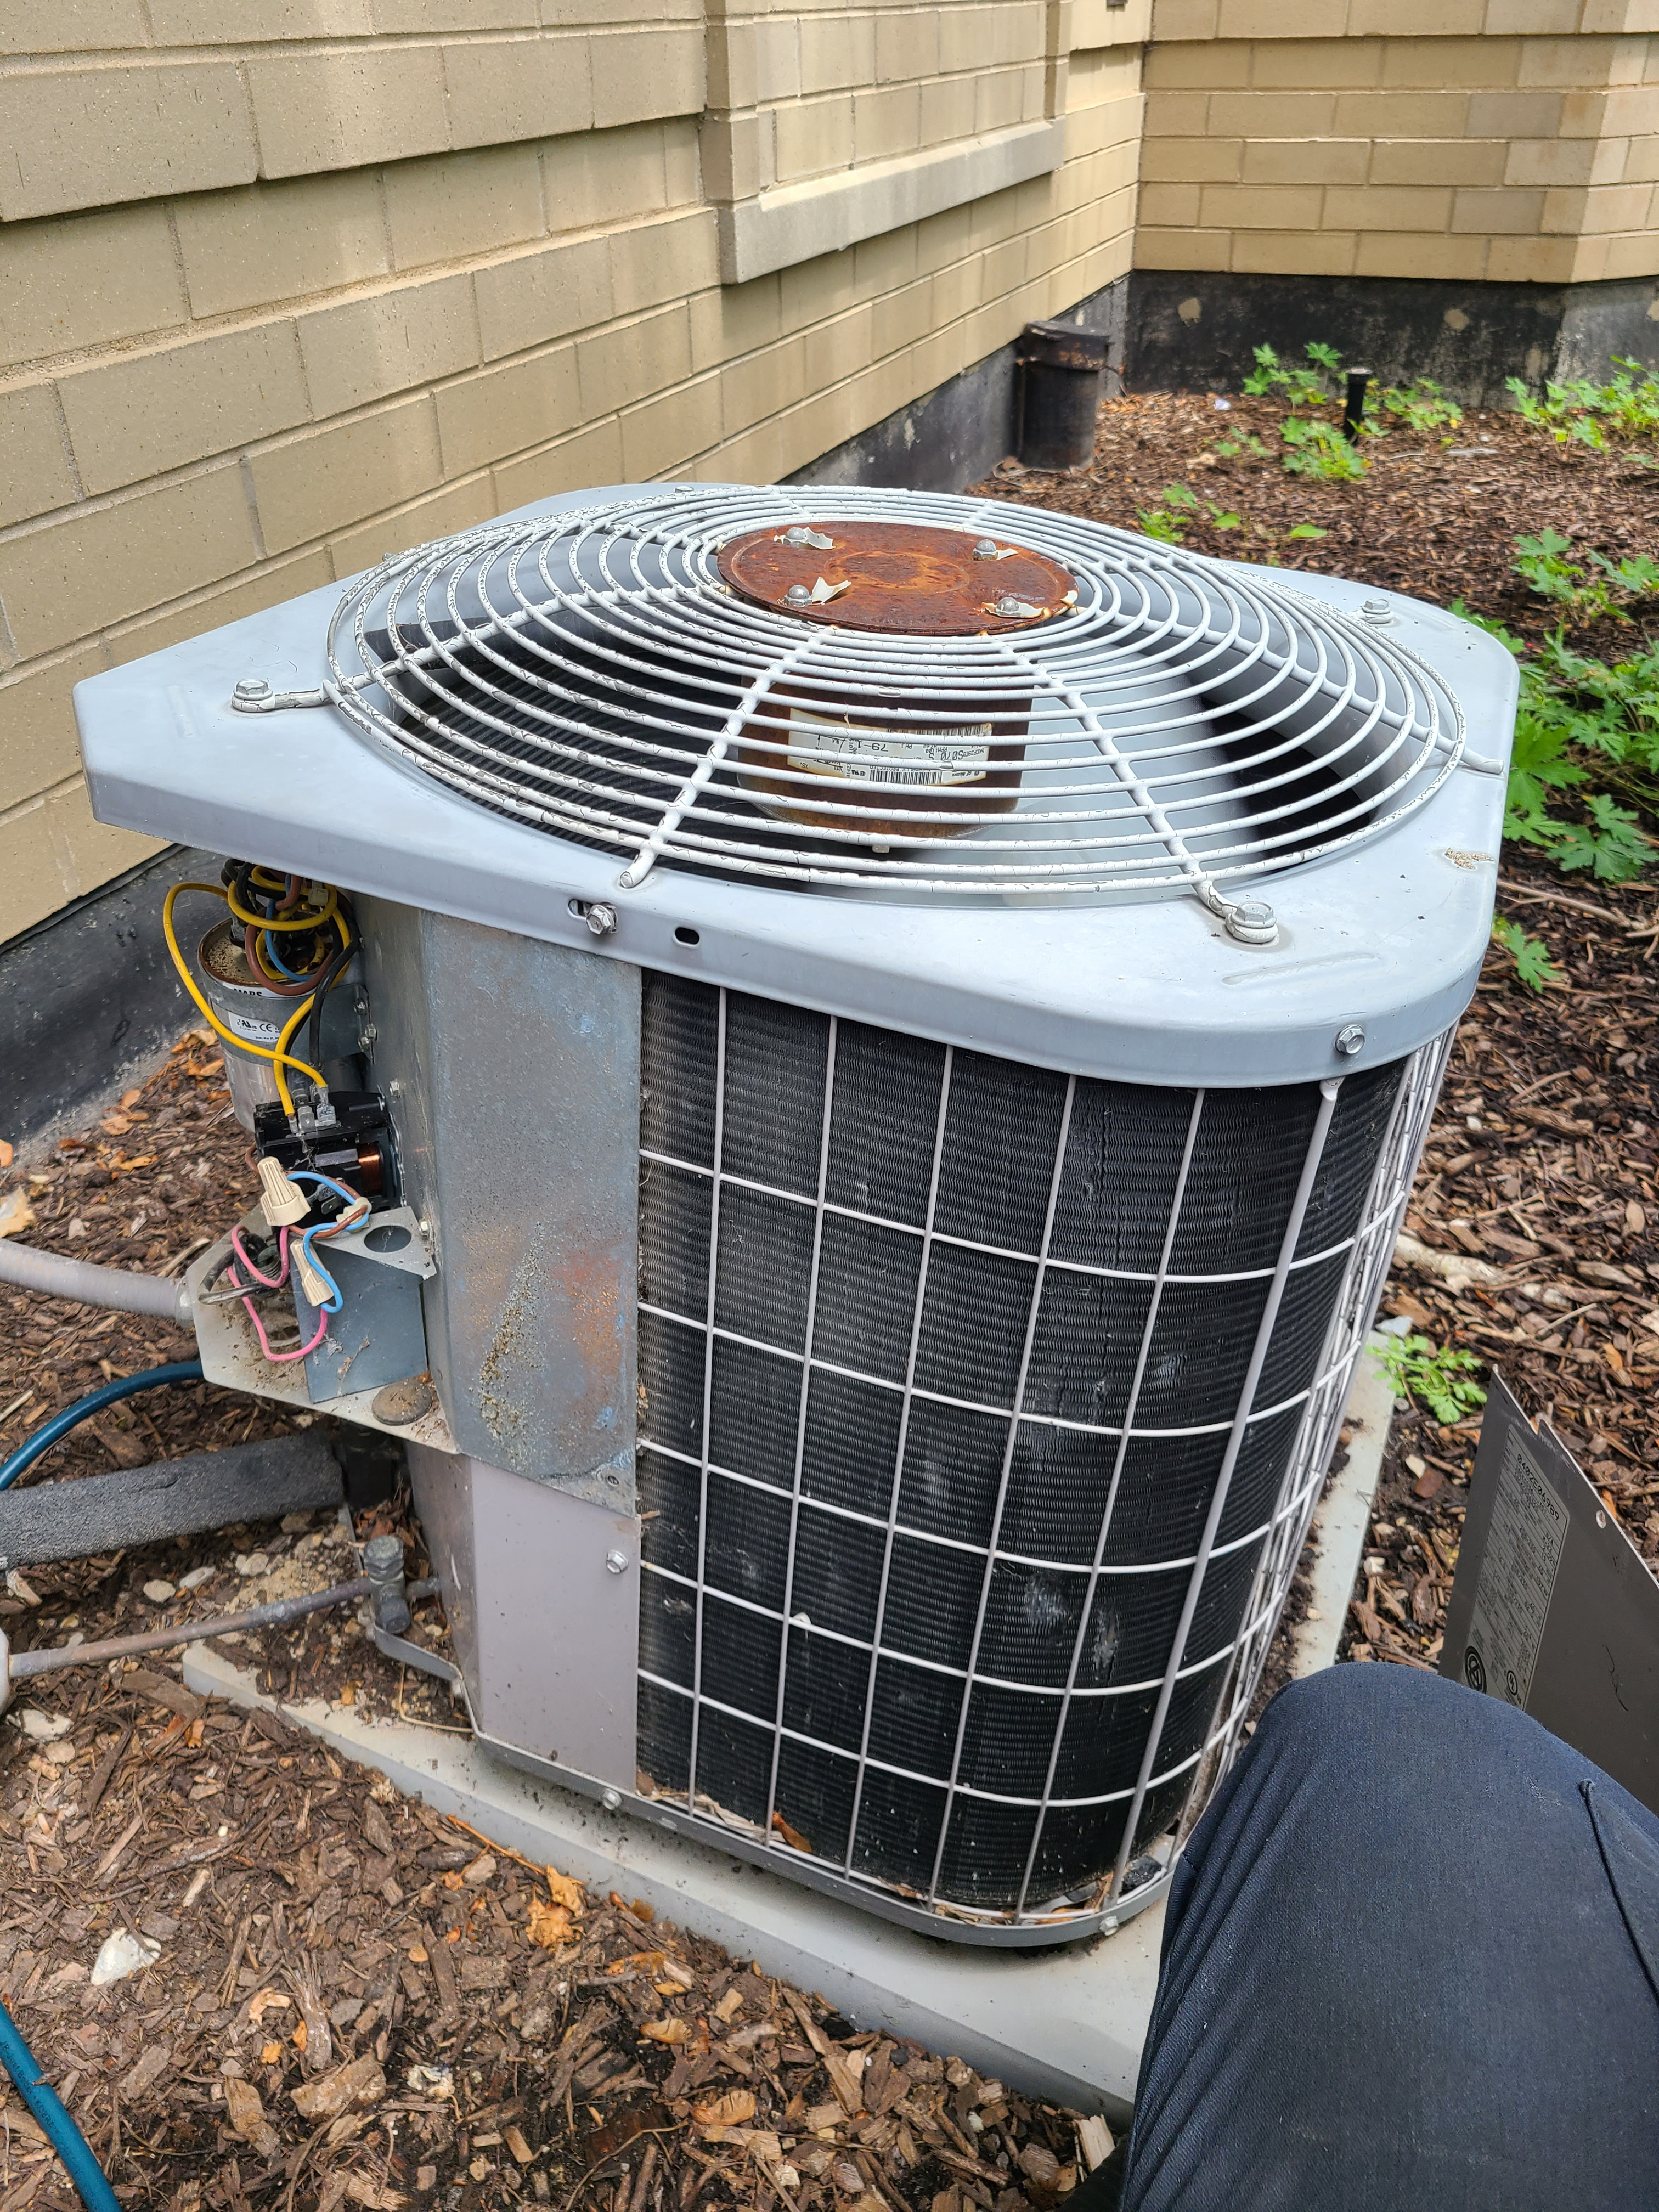 Carrier summer ac clean and check. System tuned up and ready for summer.